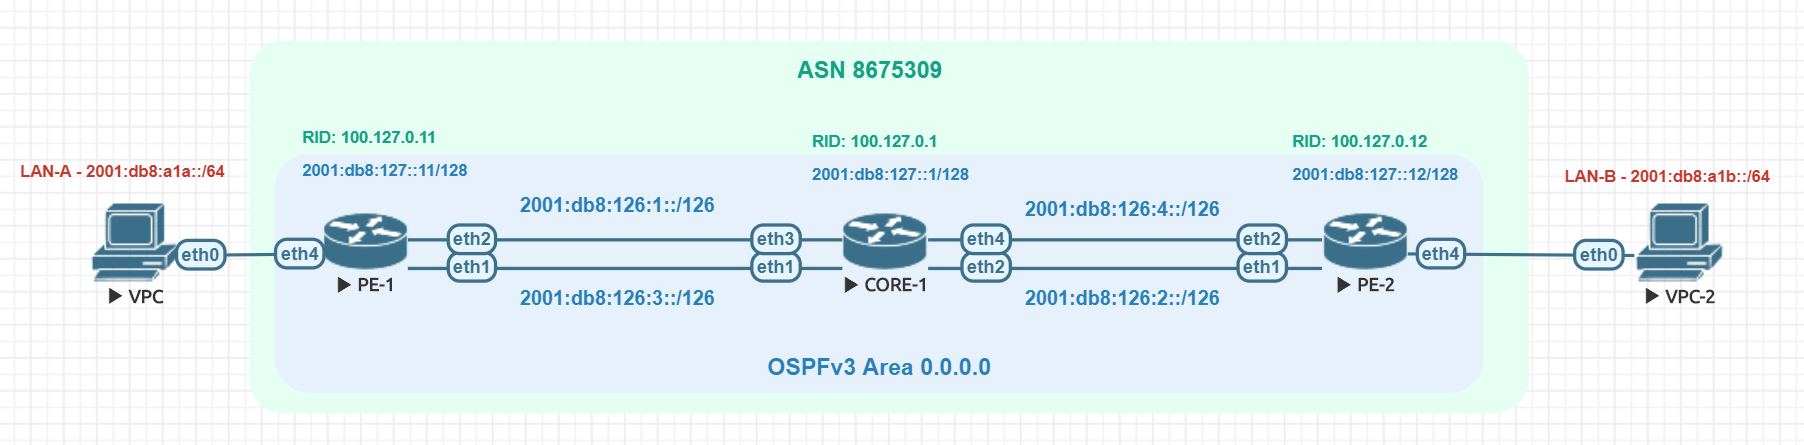 MikroTik – RouterOSv7 first look – Dynamic routing with IPv6 and OSPFv3/BGP